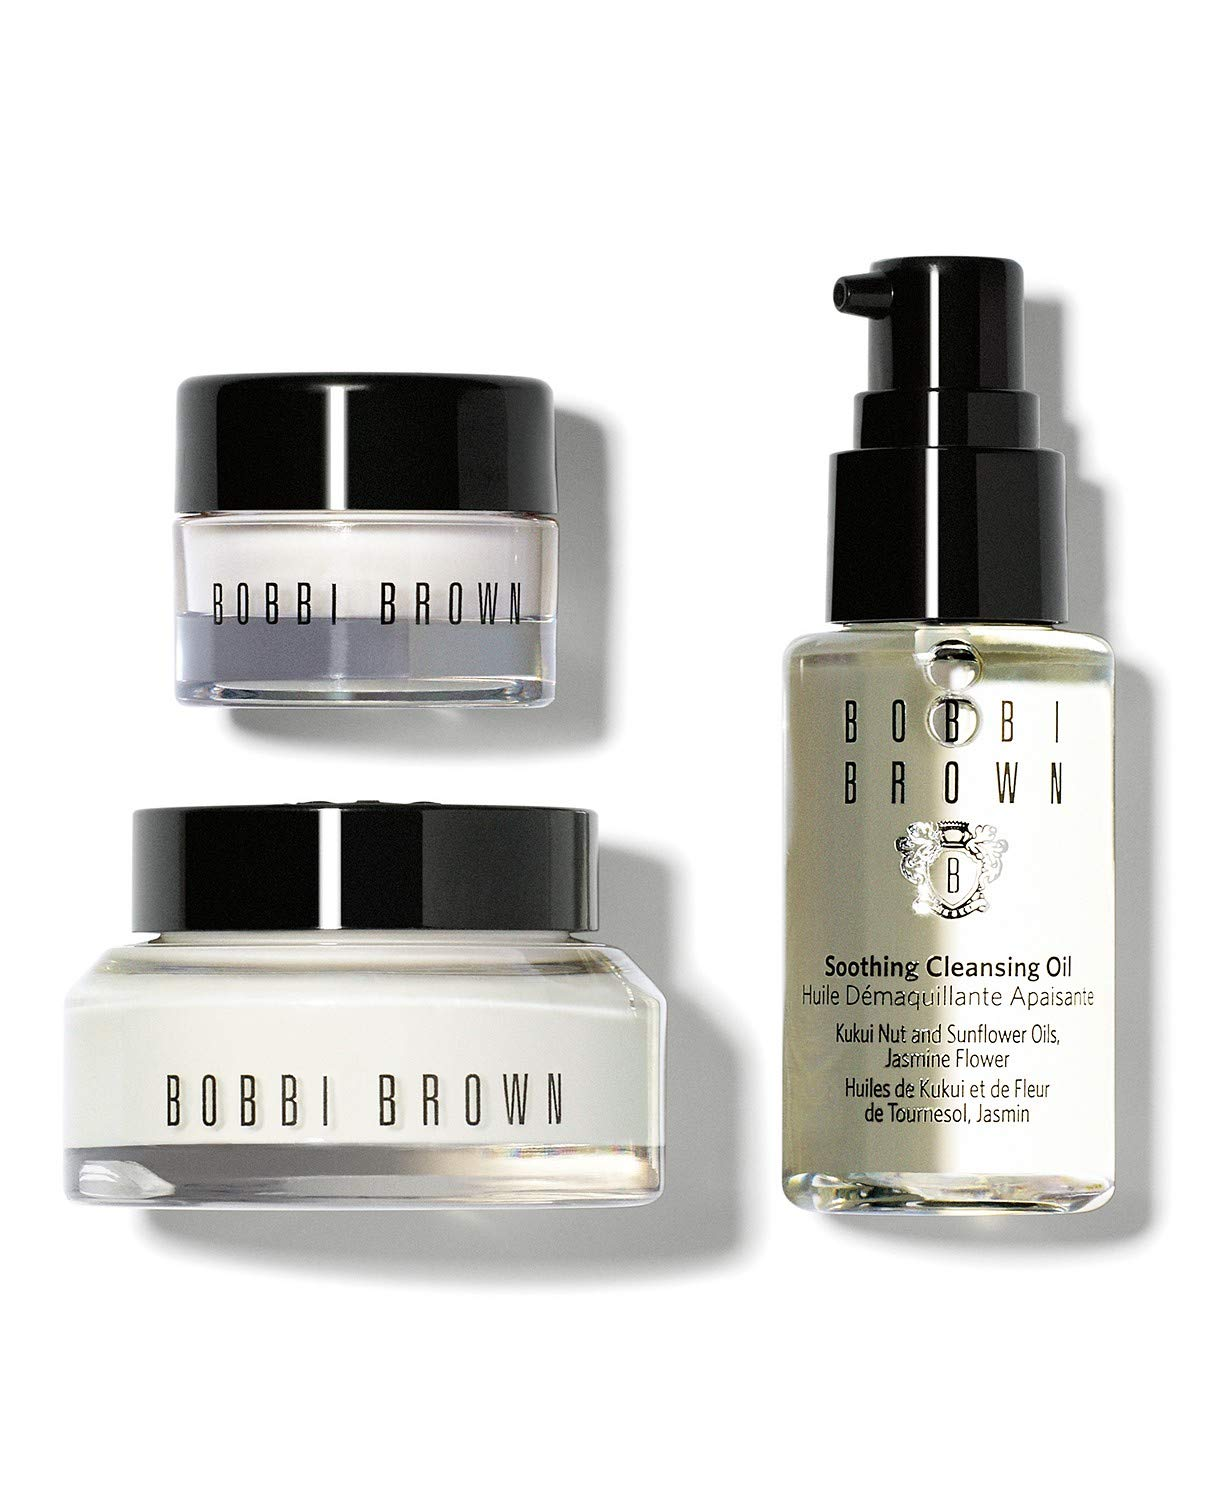 Bobbi Brown Carry On Skincare Sets/Kits, Hydrating Face Cream 15 Milliliter, Hydrating Eye Cream 7 Milliliter, Soothing Cleansing Oil 30 Milliliter